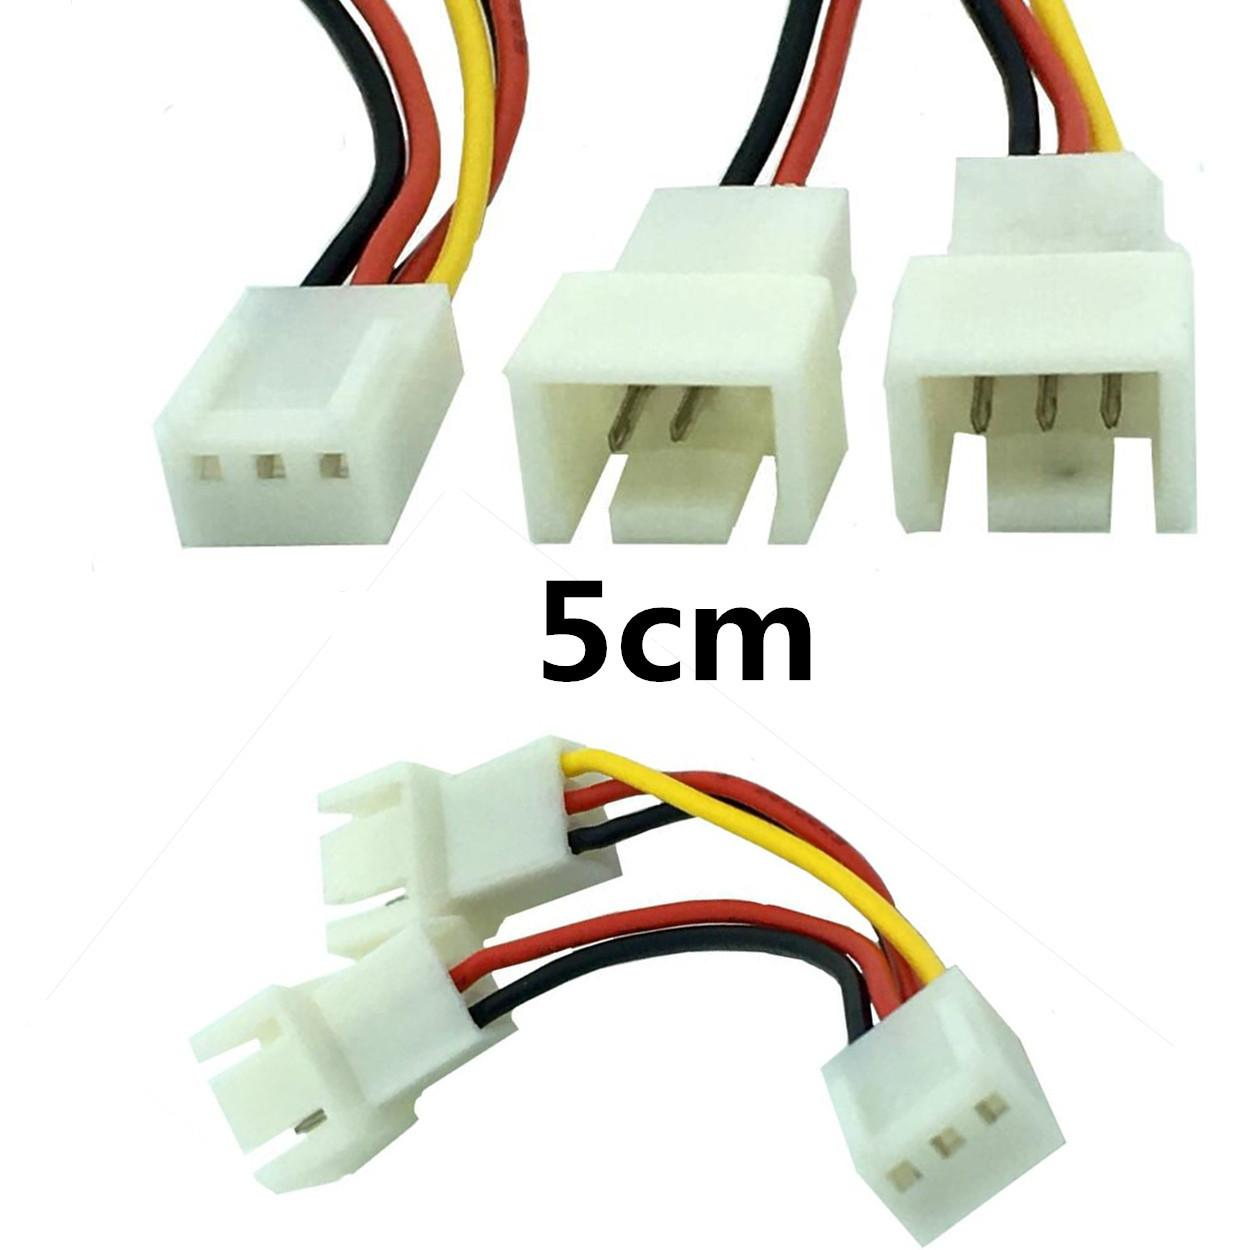 hight resolution of 5cm 12v pc fan 3 pin female splitter vga extension cable power connector adapter computer usb cables cables from candybin 4 02 dhgate com